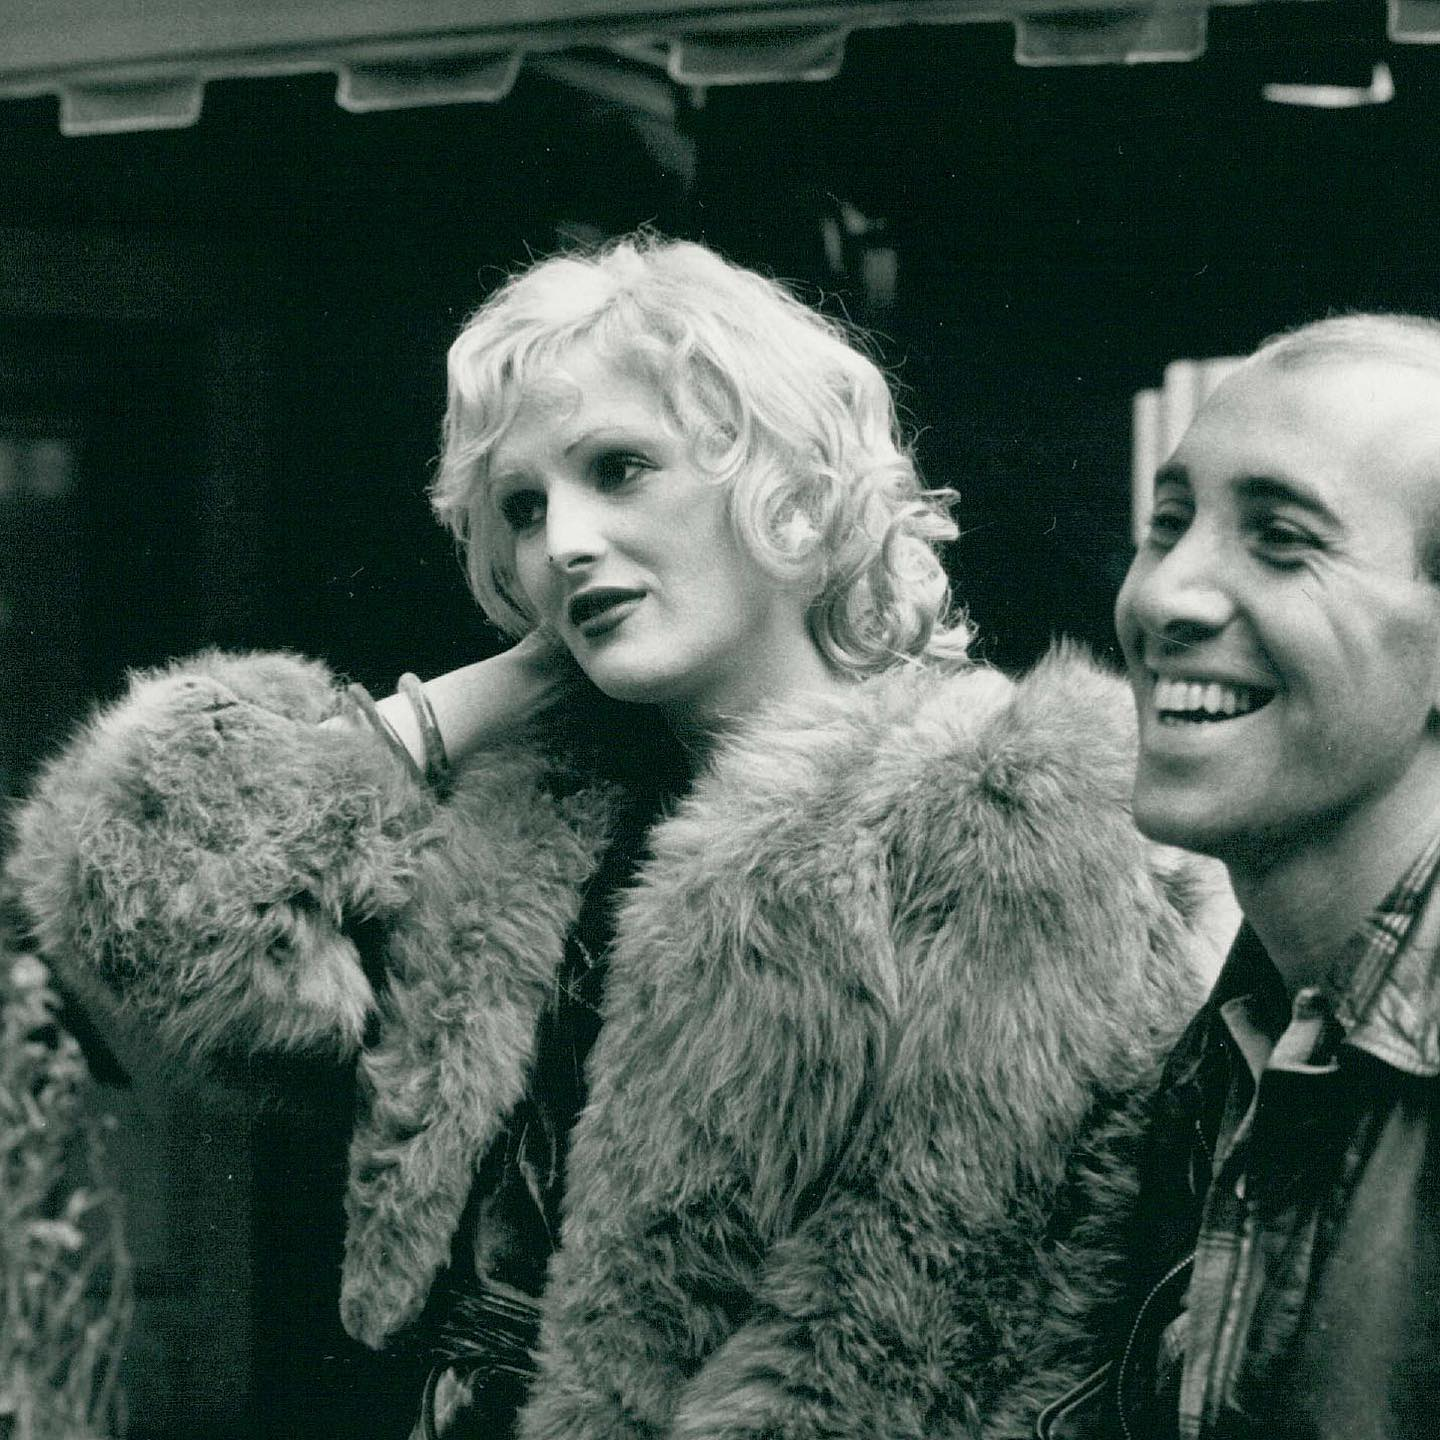 "In honor of #TransVisibiltyDay, as well as the last day of #WomensHistoryMonth, we're remembering legendary Warhol Superstar, Candy Darling!  Born in 1944 in Queens, NYC, Candy loved Hollywood glamour from the time she was small. Bullied intensely at school, she dropped out at 16, and at 17, she came out to her mother after being confronted for rumors of cross-dressing. Her mother later said ""I knew then... that I couldn't stop [her]... Candy was just too beautiful and talented.""  She initially adopted the name Hope Slattery in the early 60s, as she began frequenting gay bars in Manhattan and visiting a doctor on 5th Avenue for hormone injections. She soon met Andy Warhol, who casted in his films after seeing her perform in a play that she had written and directed. From there, her fame grew - Candy starred in more theatre, including the original production of Tennessee Williams' ""Small Craft Warnings"", at the playwright's request. She also appeared in more independent and international films, including Klute with Jane Fonda (who you can learn about in our recent post).  Darling is even immortalized in music, mentioned by name in Lou Reed's classic ""Walk on the Wild Side"" and the Velvet Underground's ""Candy Says"".  In 1974, Candy died of lymphoma at age 29. Her funeral was attended by huge crowds of friends and celebrities. Neither the priest nor eulogizers made mention of her birth name.  So many trans stories involve painful trials and suffering - while Candy was no stranger to these, she lived her life boldly, beautifully, and authentically, surrounded by people who adored her. We wish the same for all our transgender brothers, sisters, and siblings ❤️  1) Candy Darling and Tom Eyan arrive at Obie Awards, shot by Fred McDarrah. May 8, 1972.  2) Candy sits on Dave Susskind's ""FreeTime"" TV program, shot by Fred McDarrah. December 7, 1970.  © Fred W. McDarrah/MUUS Collection"